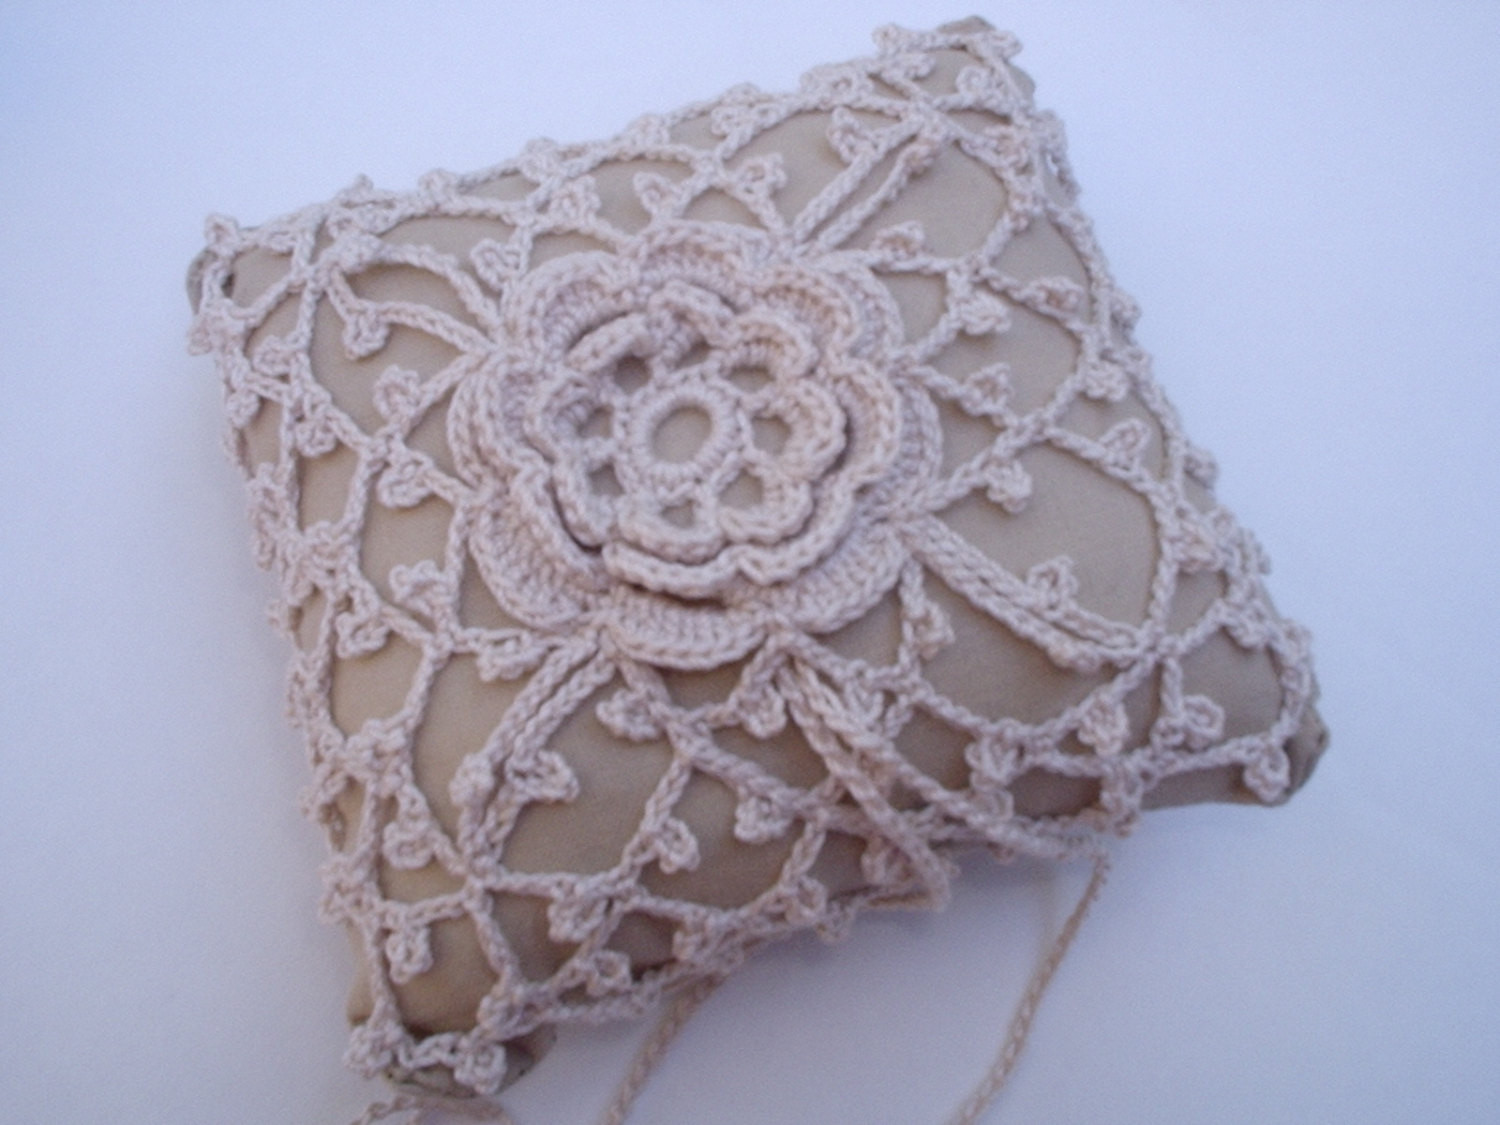 Crochet Rings Inspirational Pattern Crochet Wedding Lace Ring Bearer Pillow Pin by Of Unique 40 Pics Crochet Rings